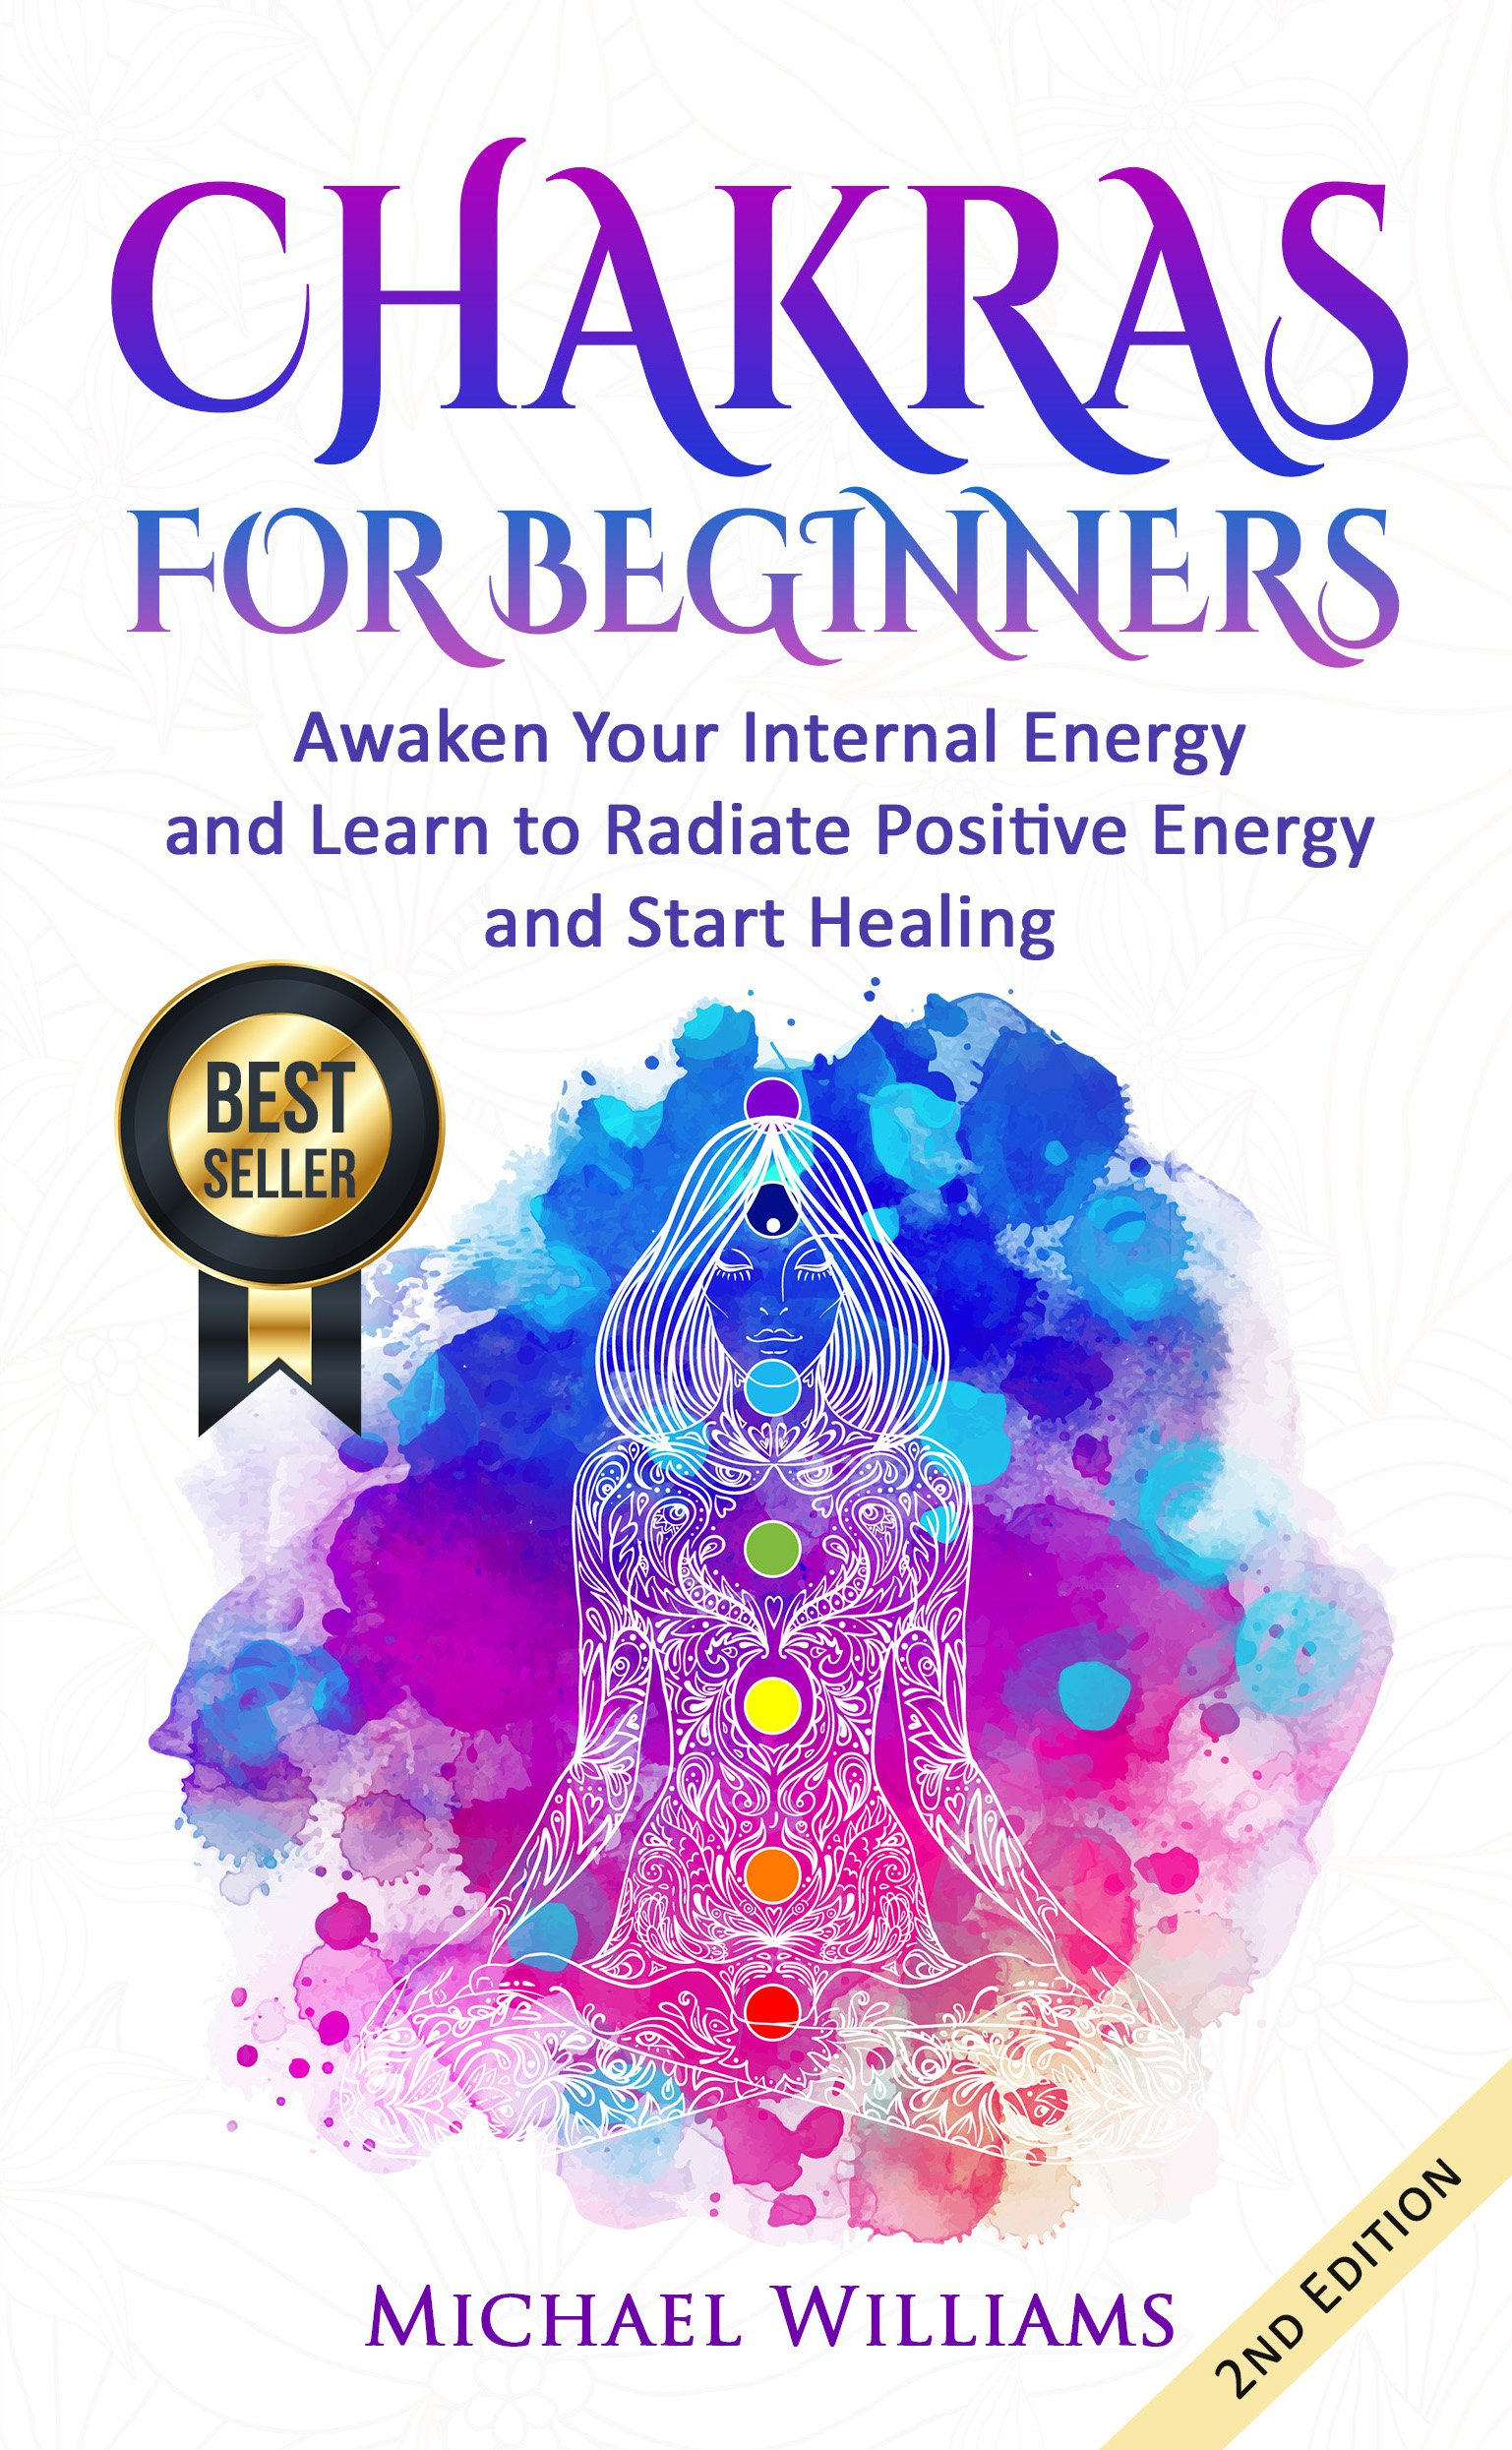 CHAKRAS: Chakras for Beginners - Awaken Your Internal Energy and Learn to Radiate Positive Energy and Start Healing (Chakra Meditation Balance Chakras Mudras Chakras Yoga) (English Edition)